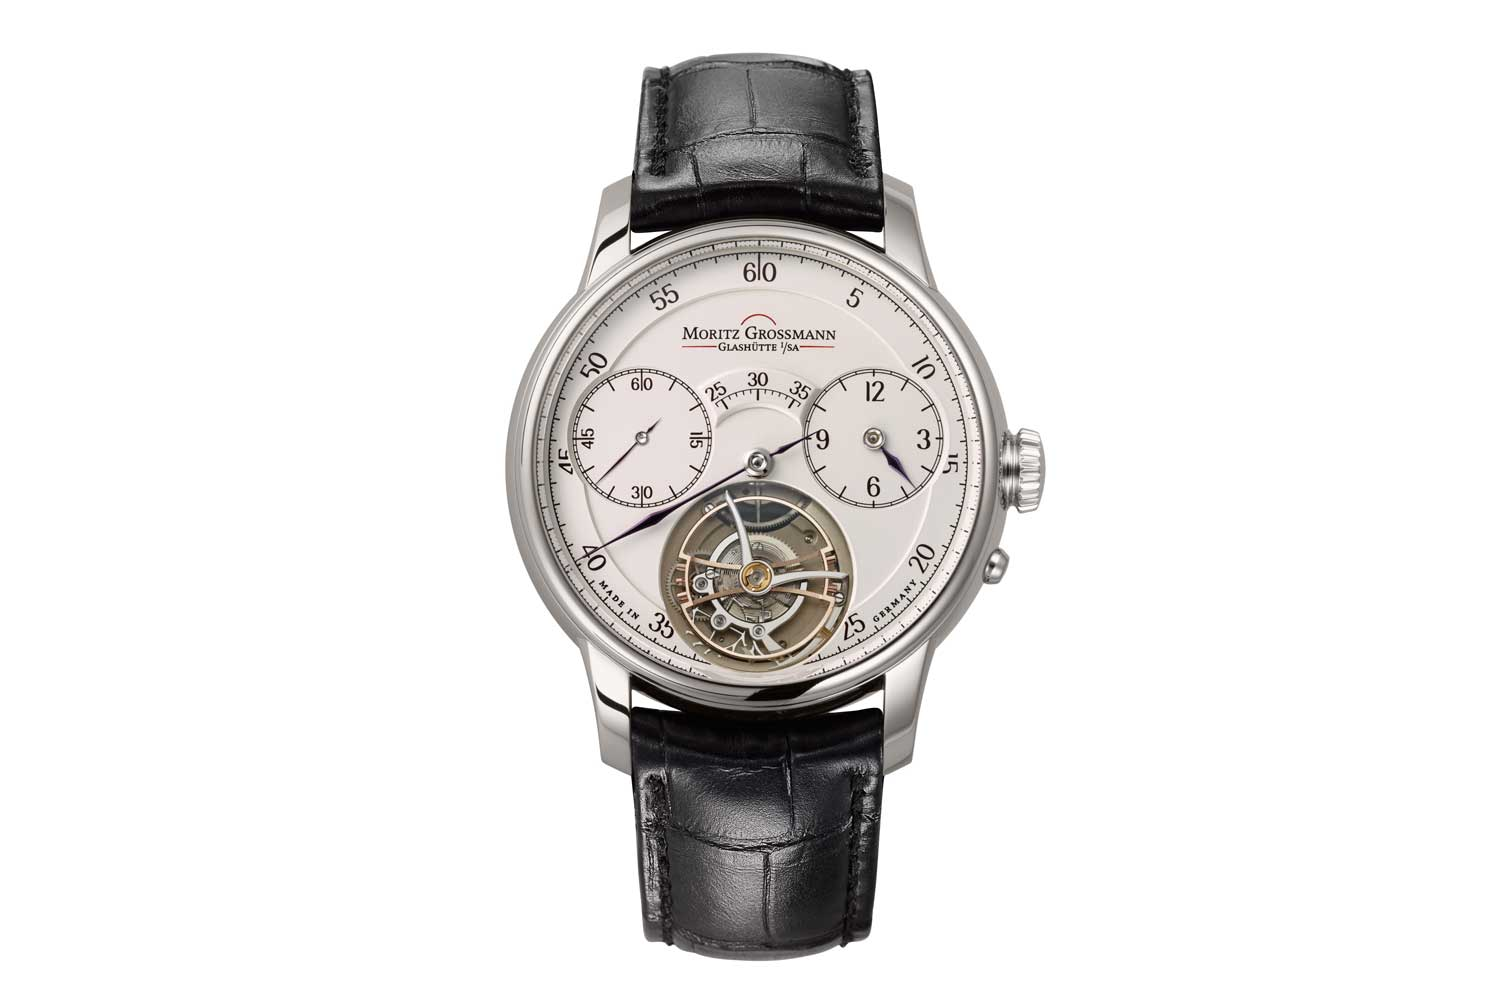 The Moritz Grossmann Benu Tourbillon is equipped with a stop seconds mechanism that uses a small bunch of human hairs obtained from the head of the head of the brand, Ms Christine Hutter (Image: Moritz Grossmann)